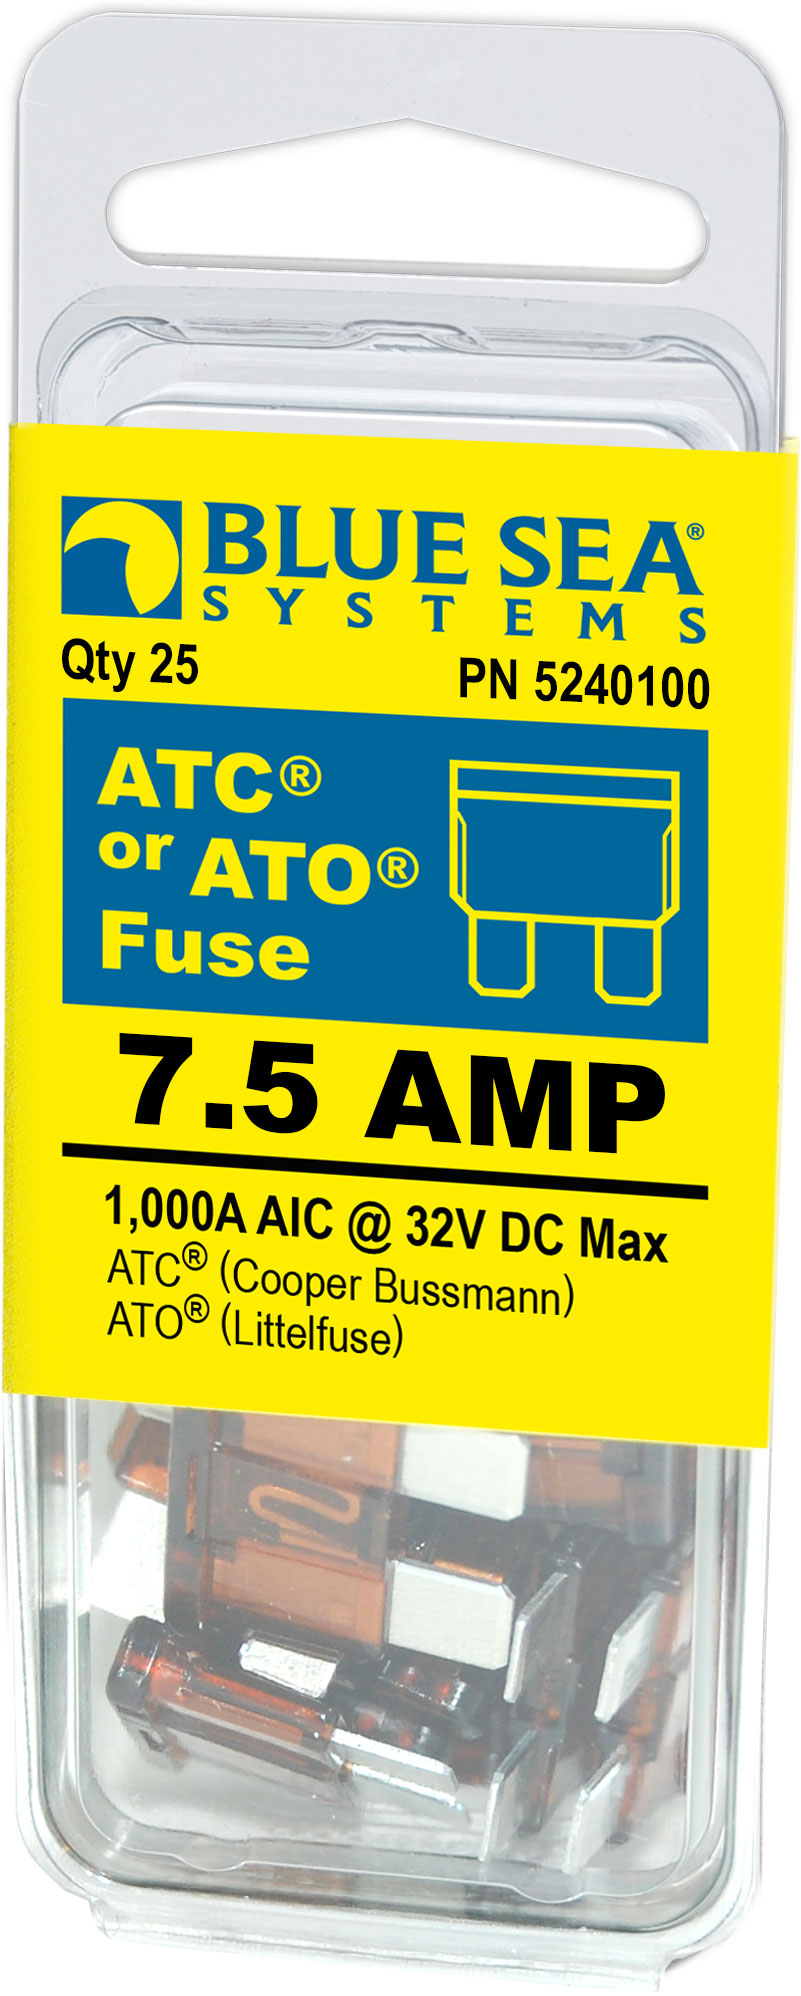 Vs Ato Fuse Tac Series Blade Fuses Automotive Passenger Car From Littelfuse Mini Addacircuit Product Details Pep Boys Atc 7 5a Pack 25 Blue Sea Systems